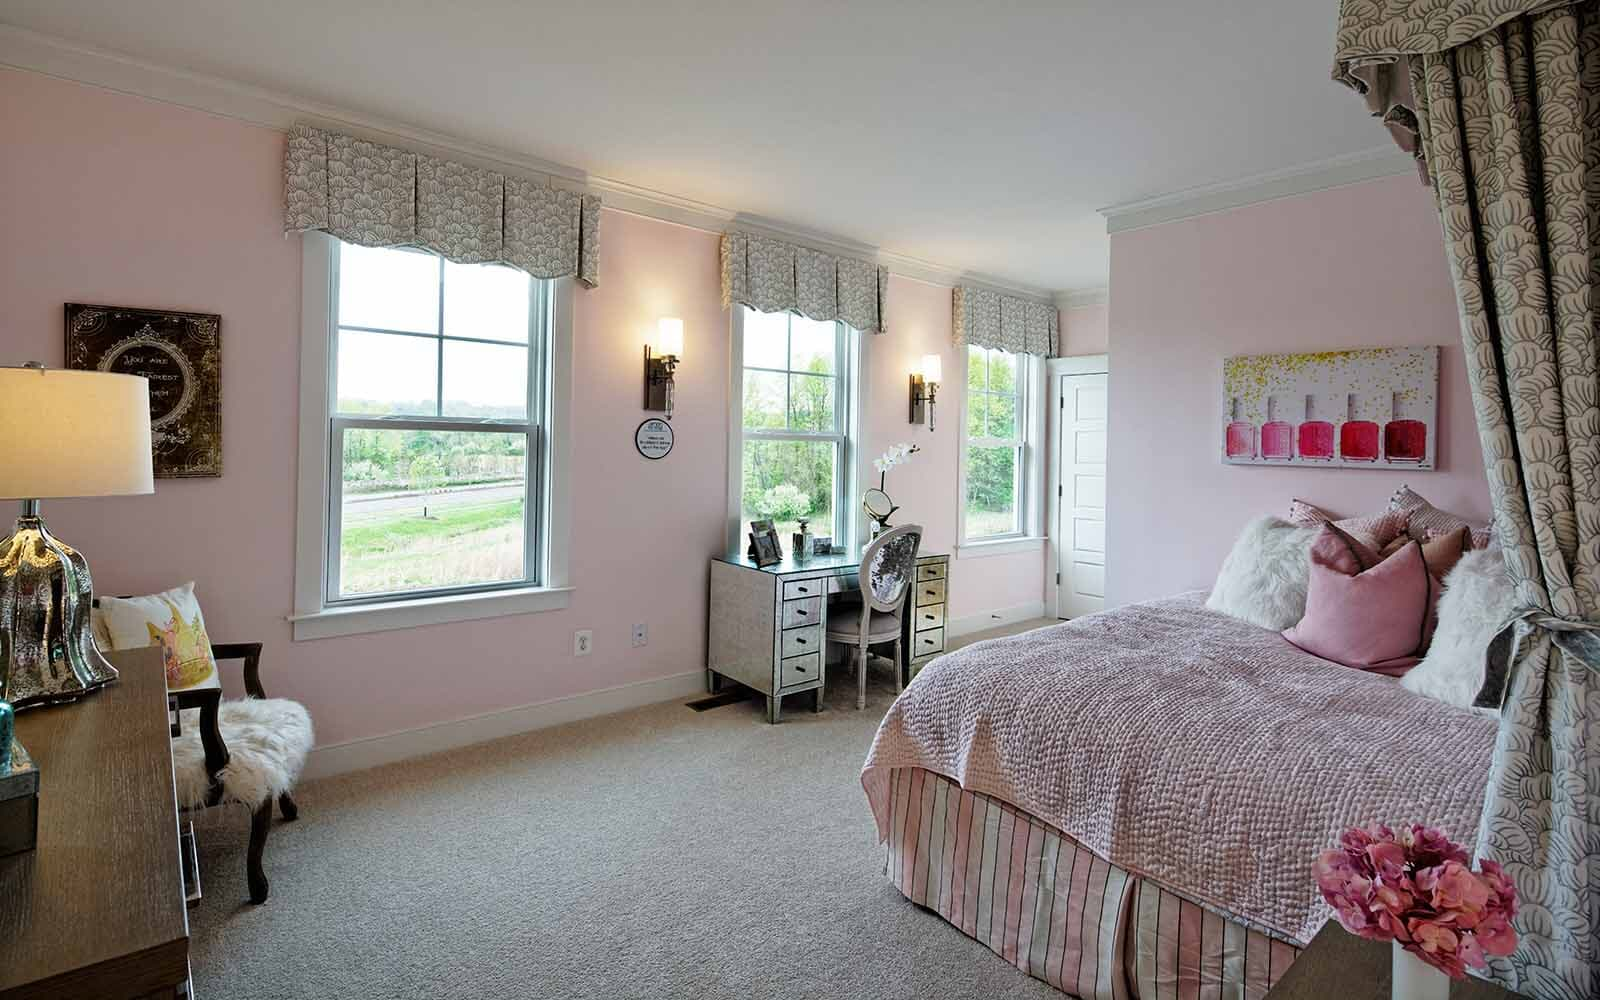 Cresswell-bedroom4-single-family-homes-leesburg-va-waterford-manor-brookfield-residential